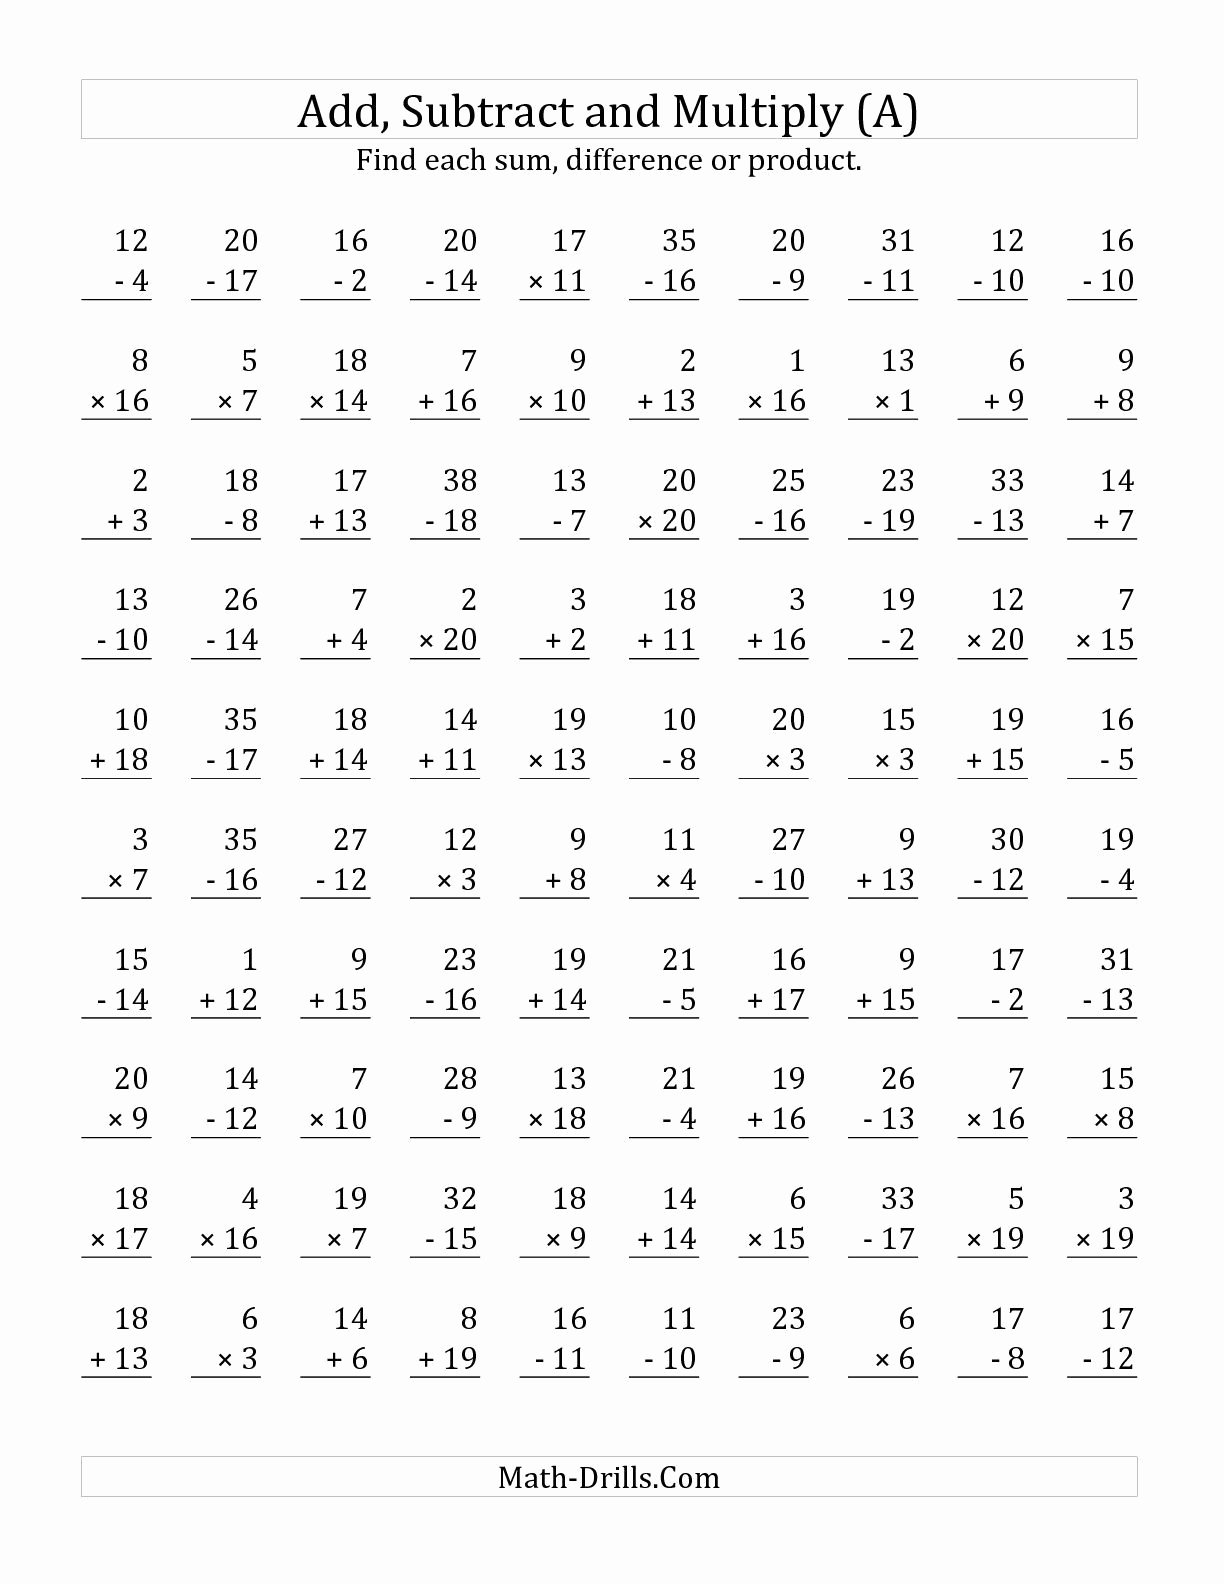 Addition Subtraction and Multiplication Worksheets Awesome the Adding Subtracting and Multiplying with Facts From 1 to